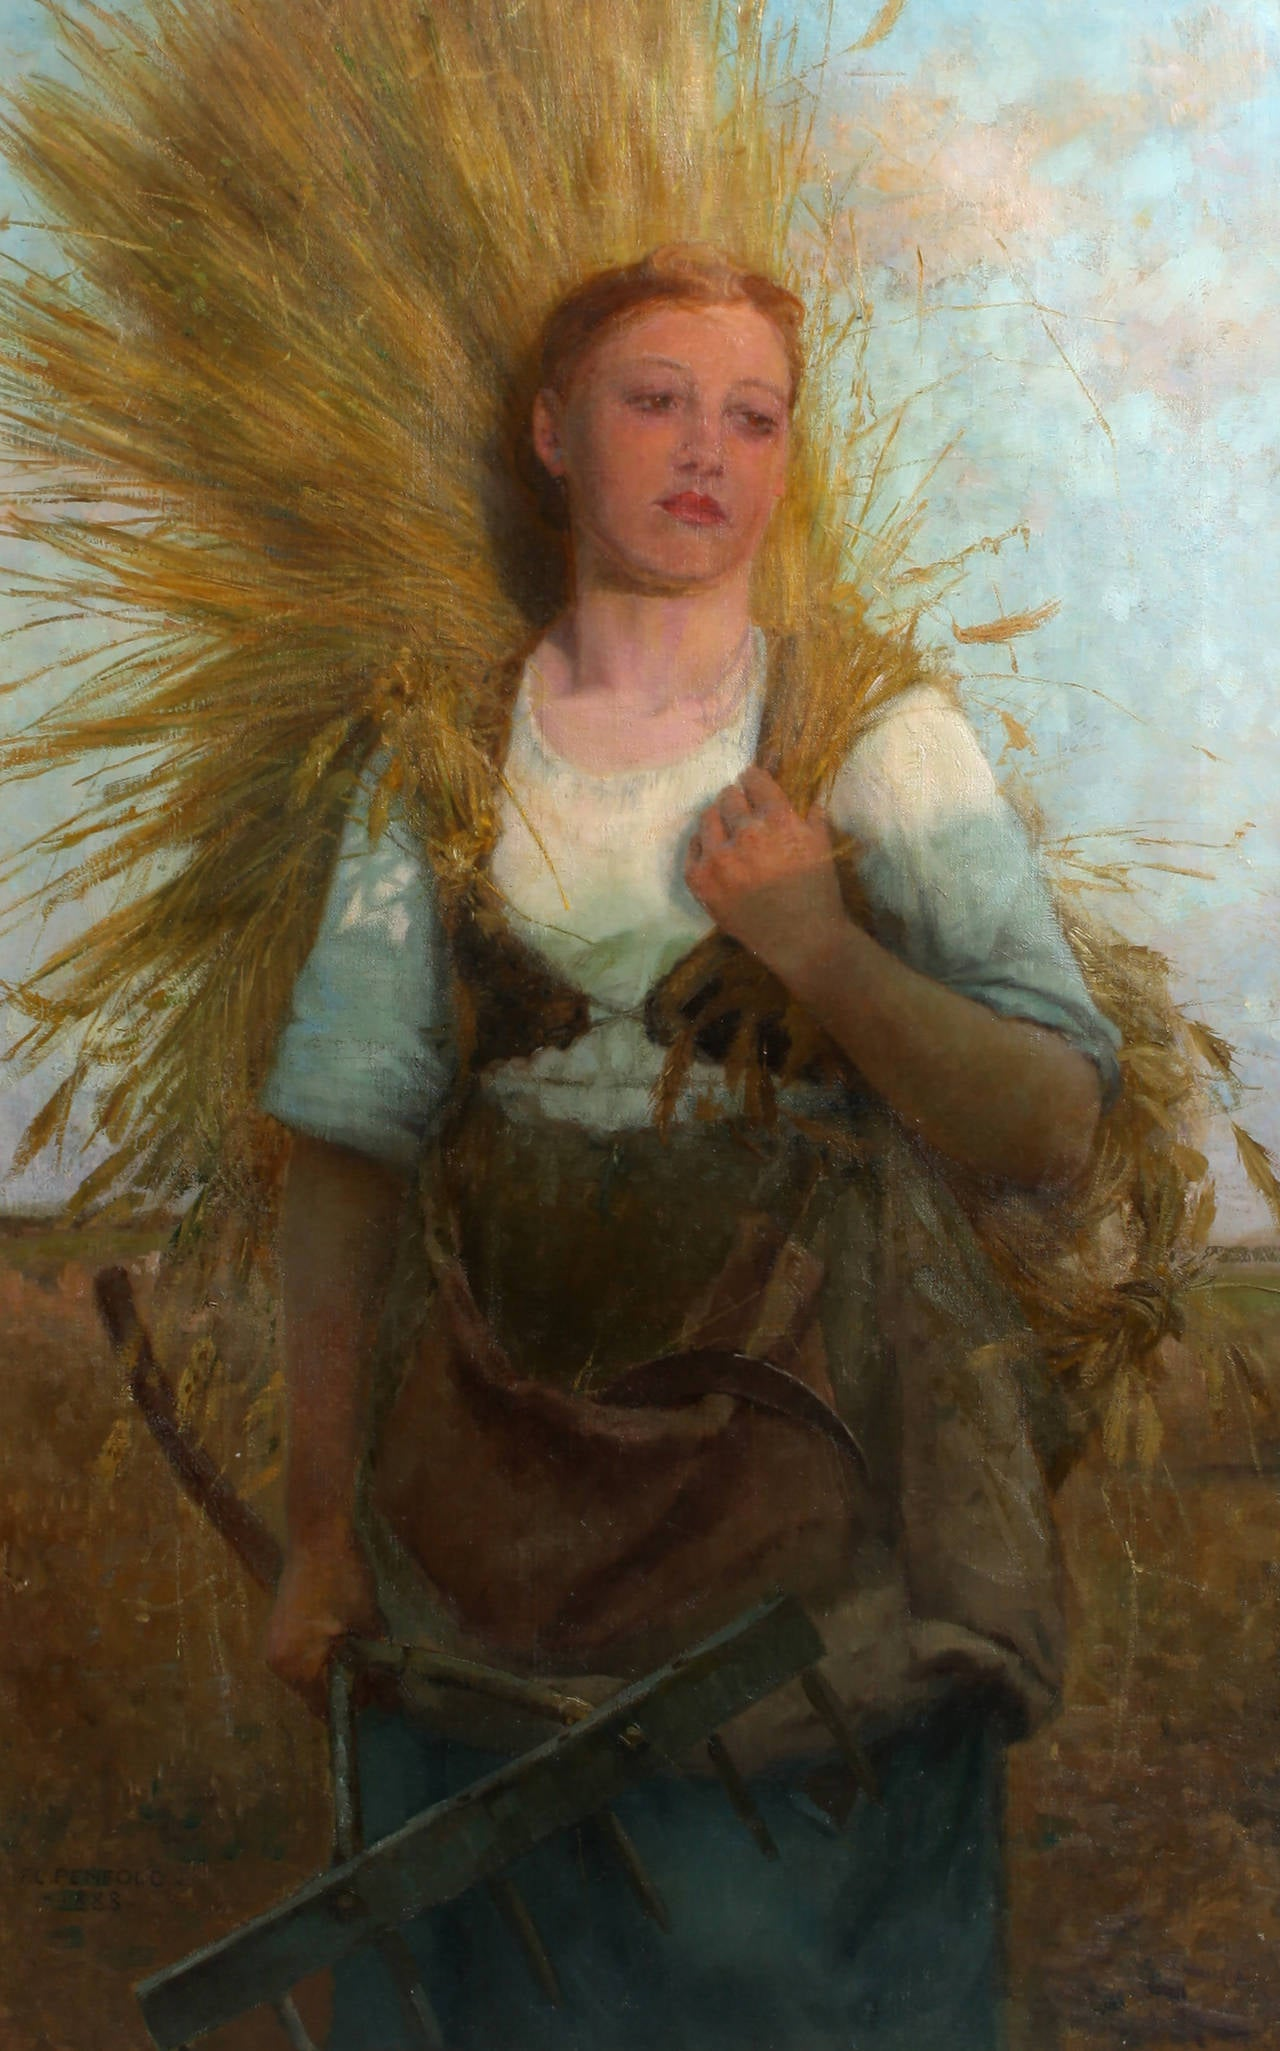 Breton Woman with Wheat on her back